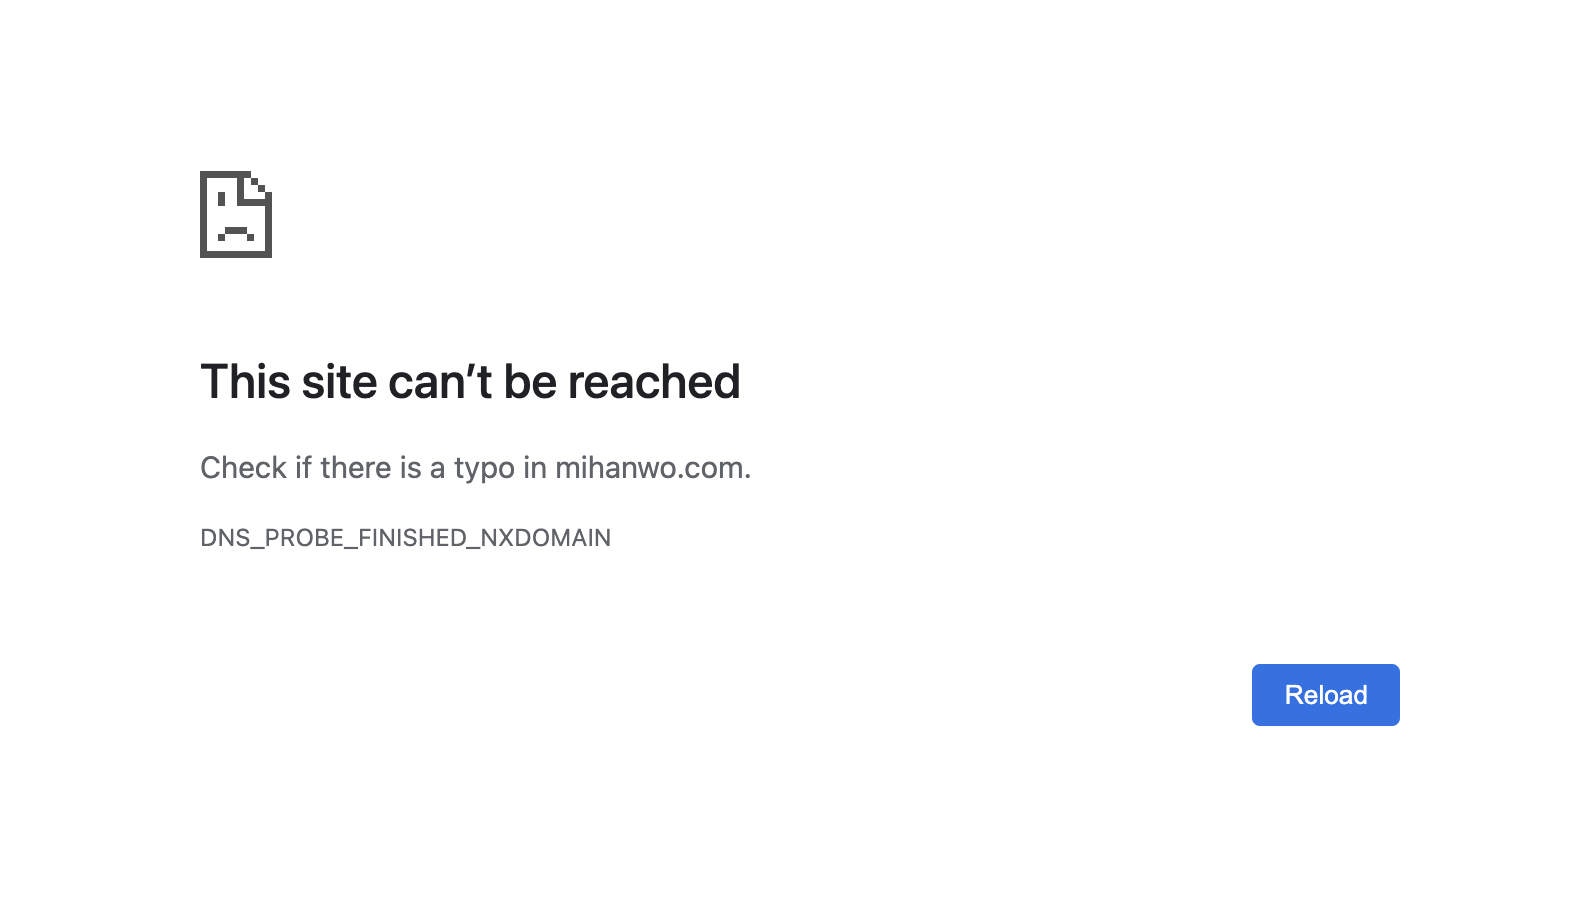 This site can't be reached error